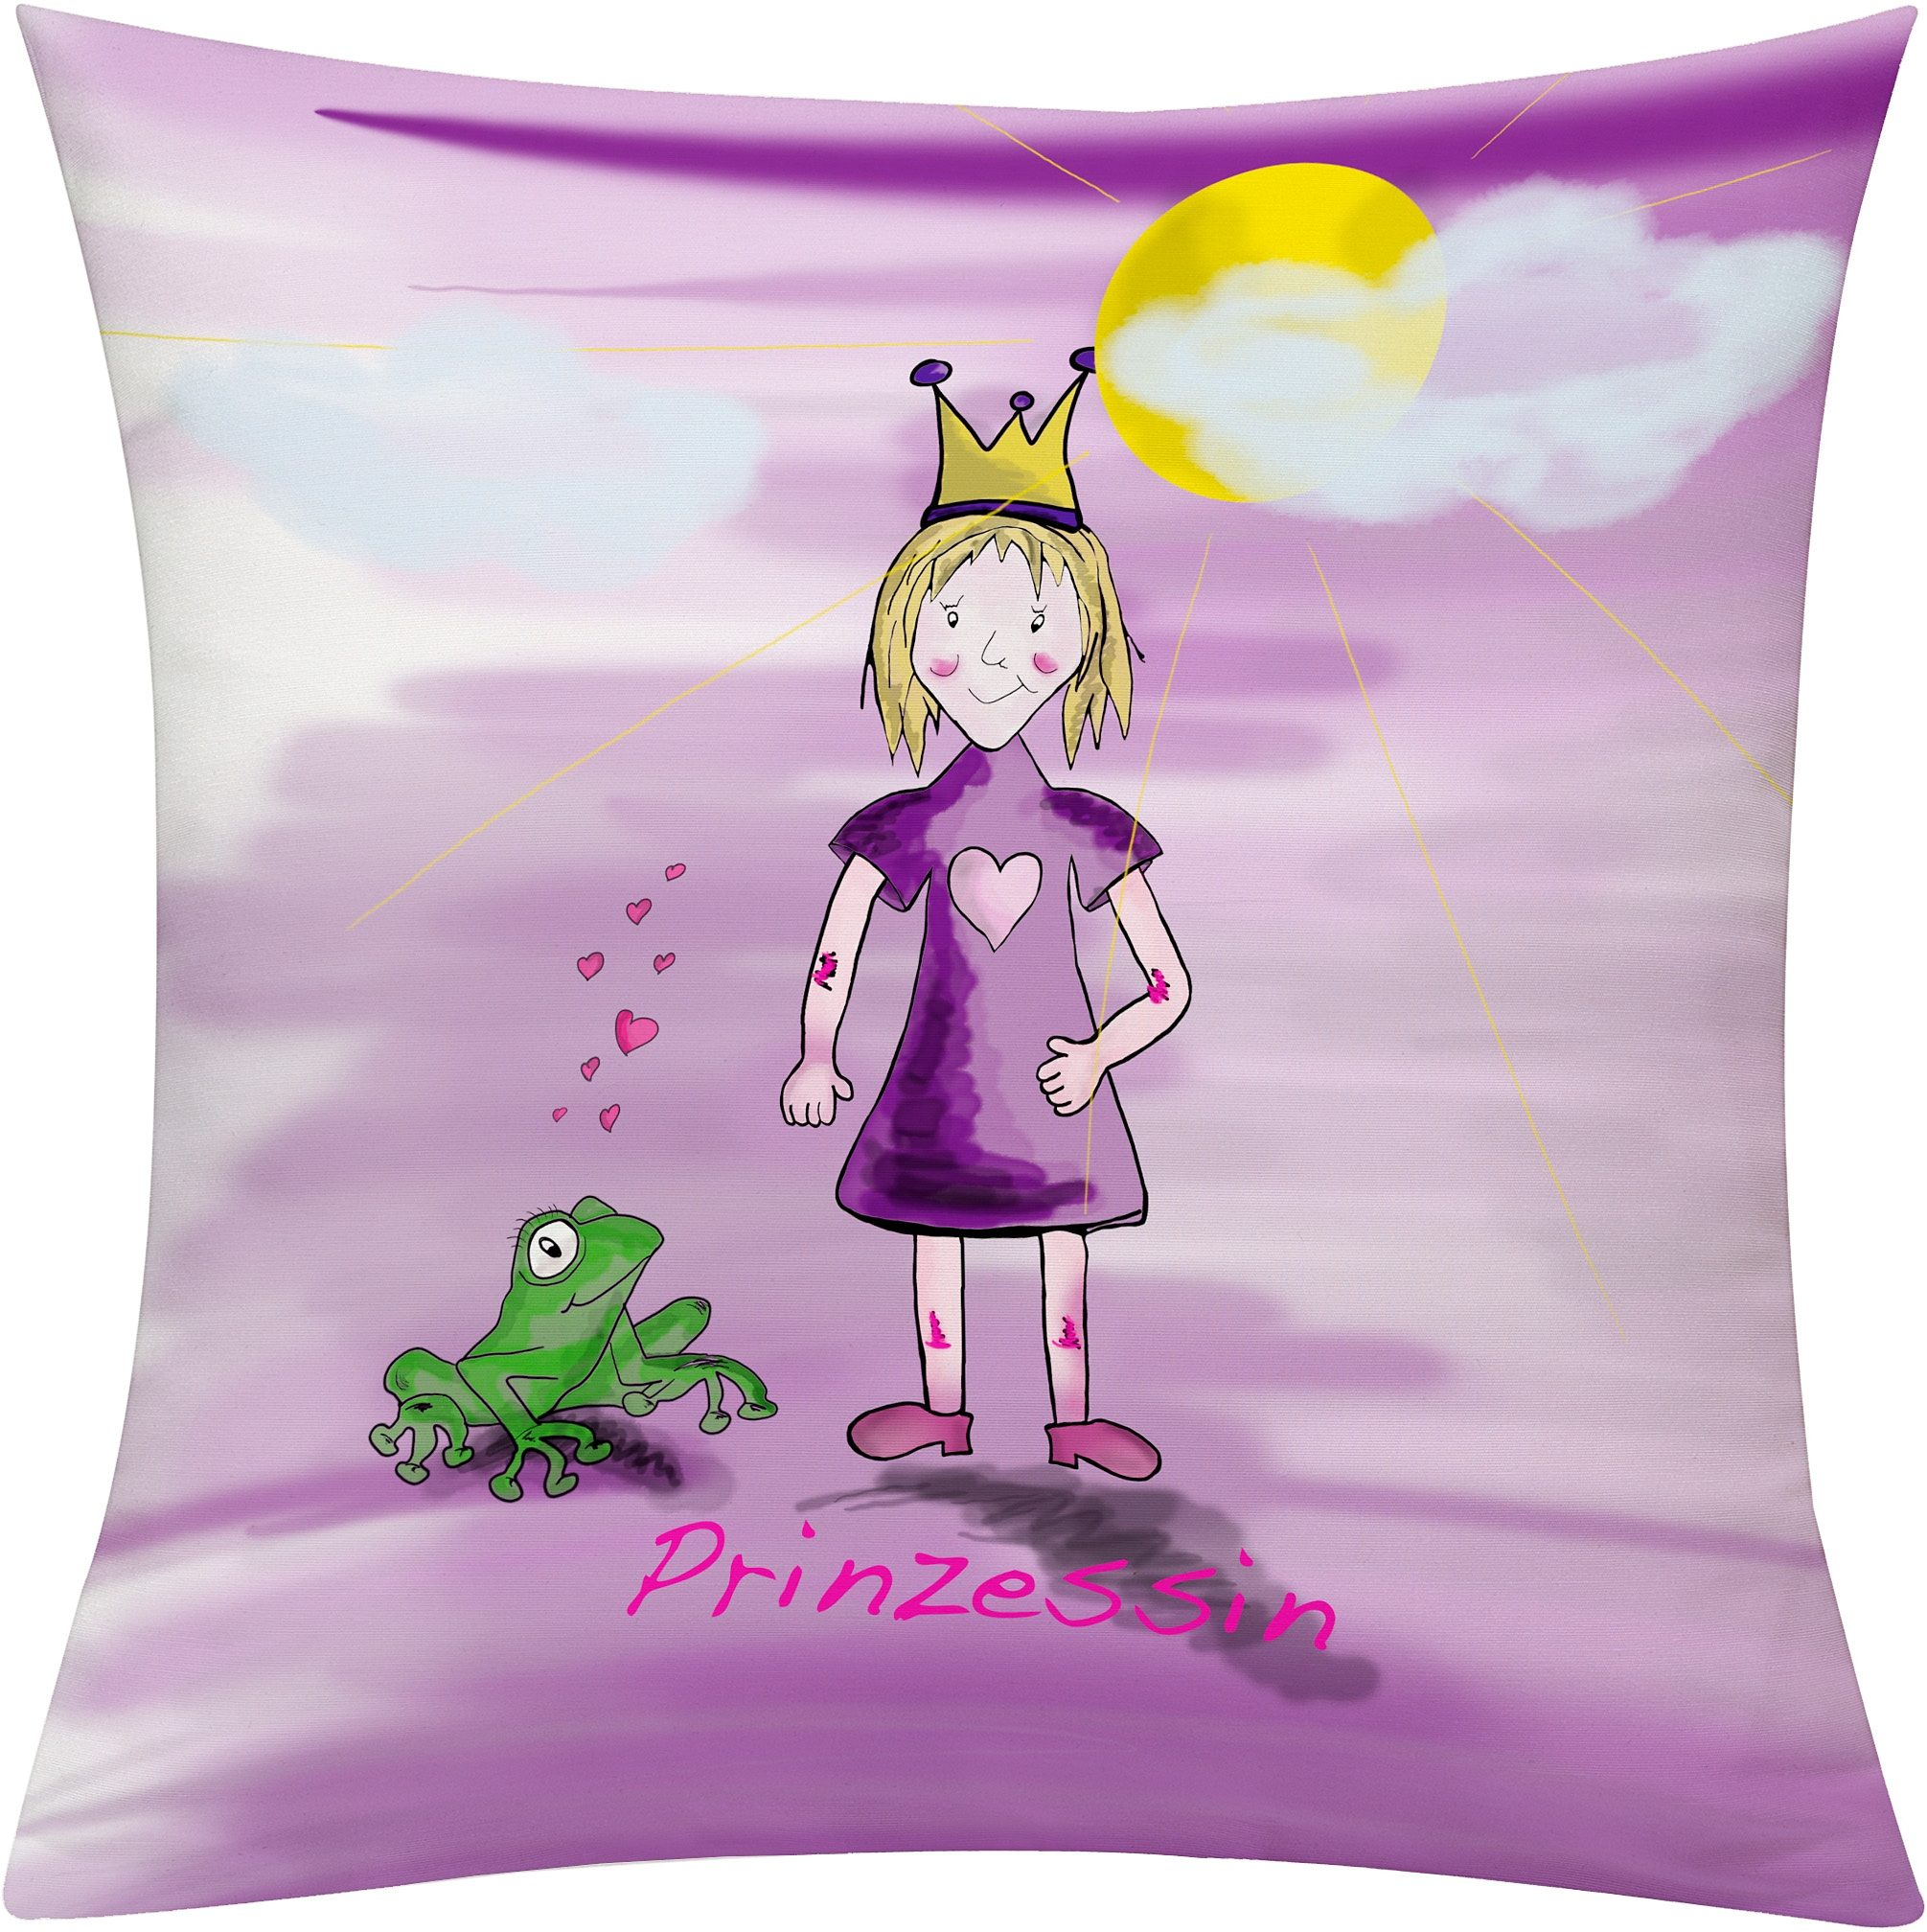 Kissenhülle »Prinzessin Tag«, emotion textiles